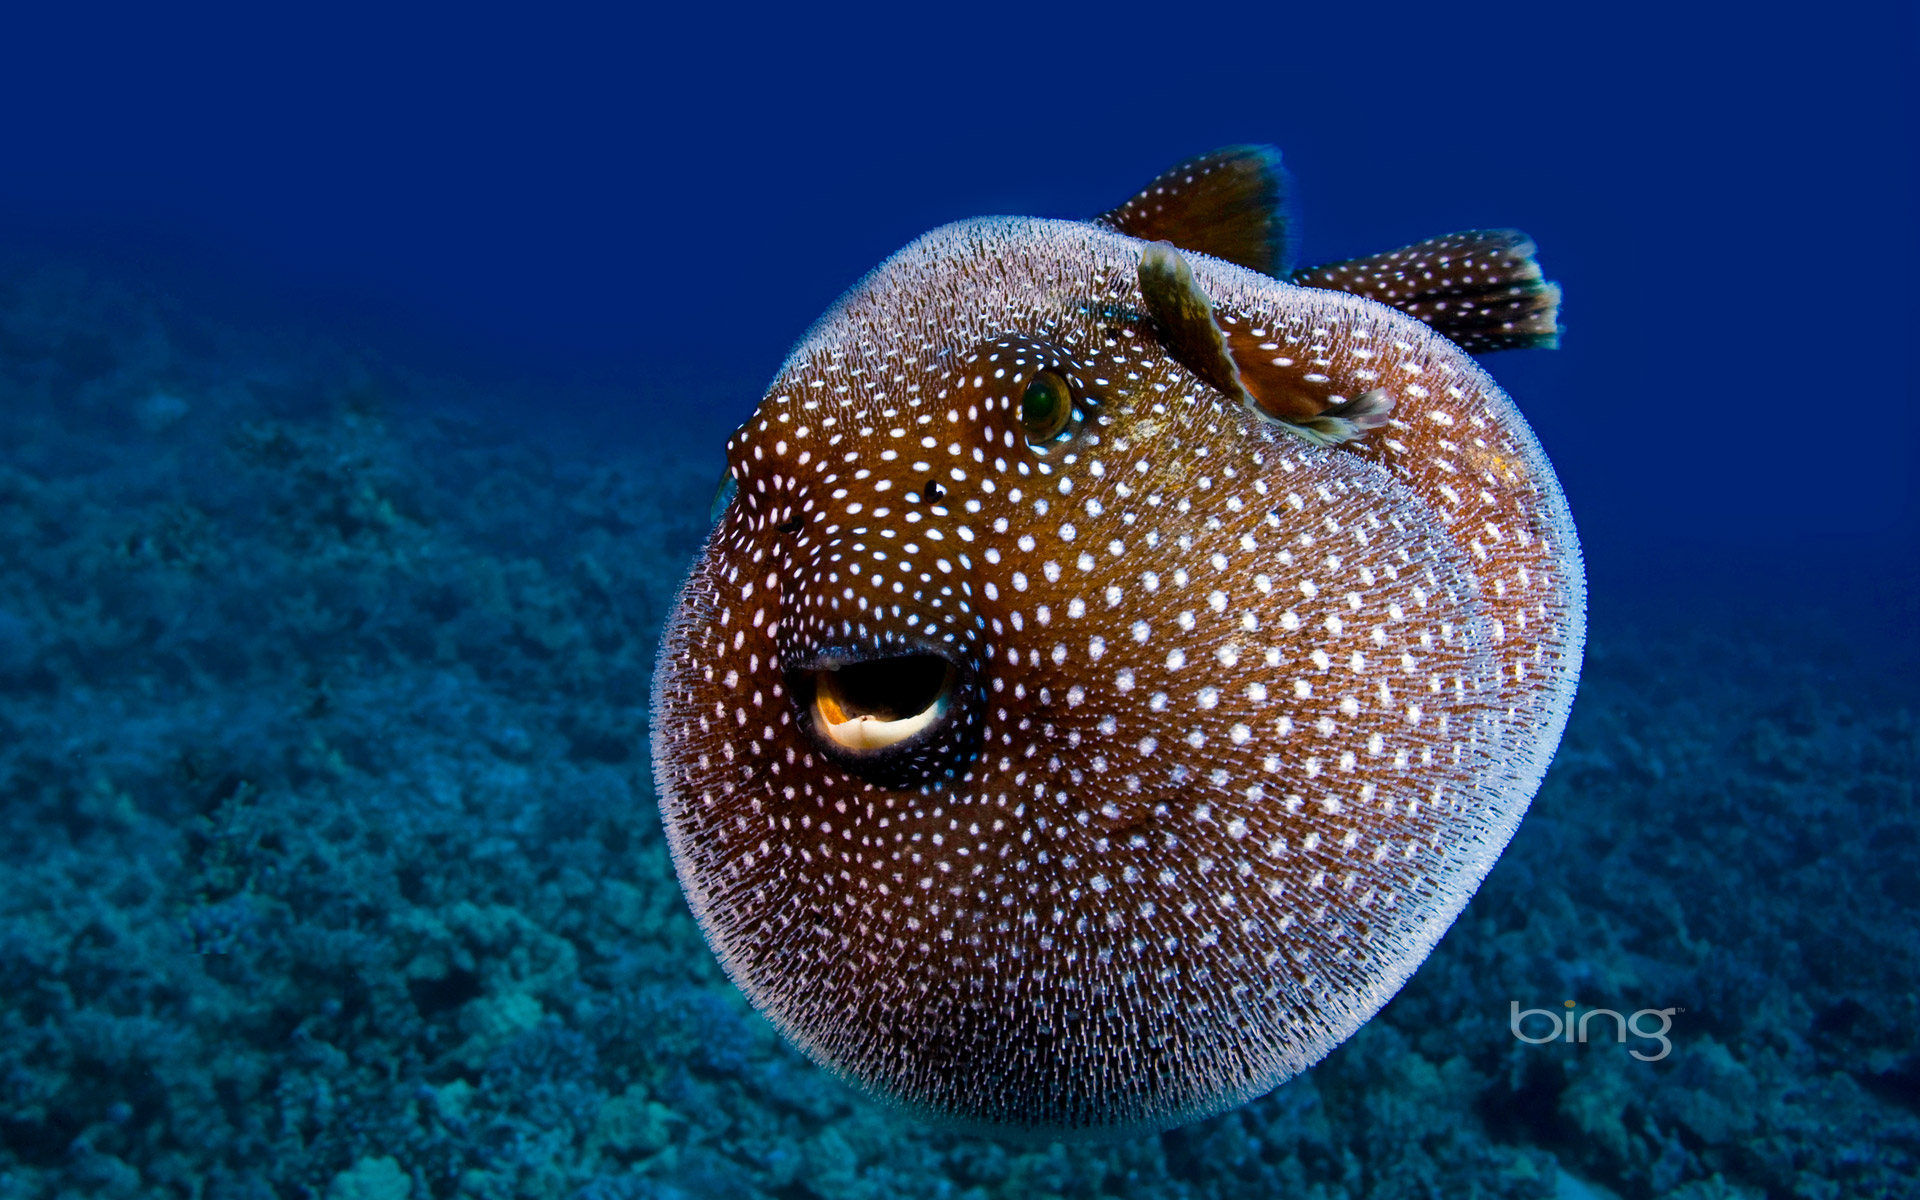 Weekly bing wallpapers 22 28 january 2013 hd wallpapers for Puffer fish images